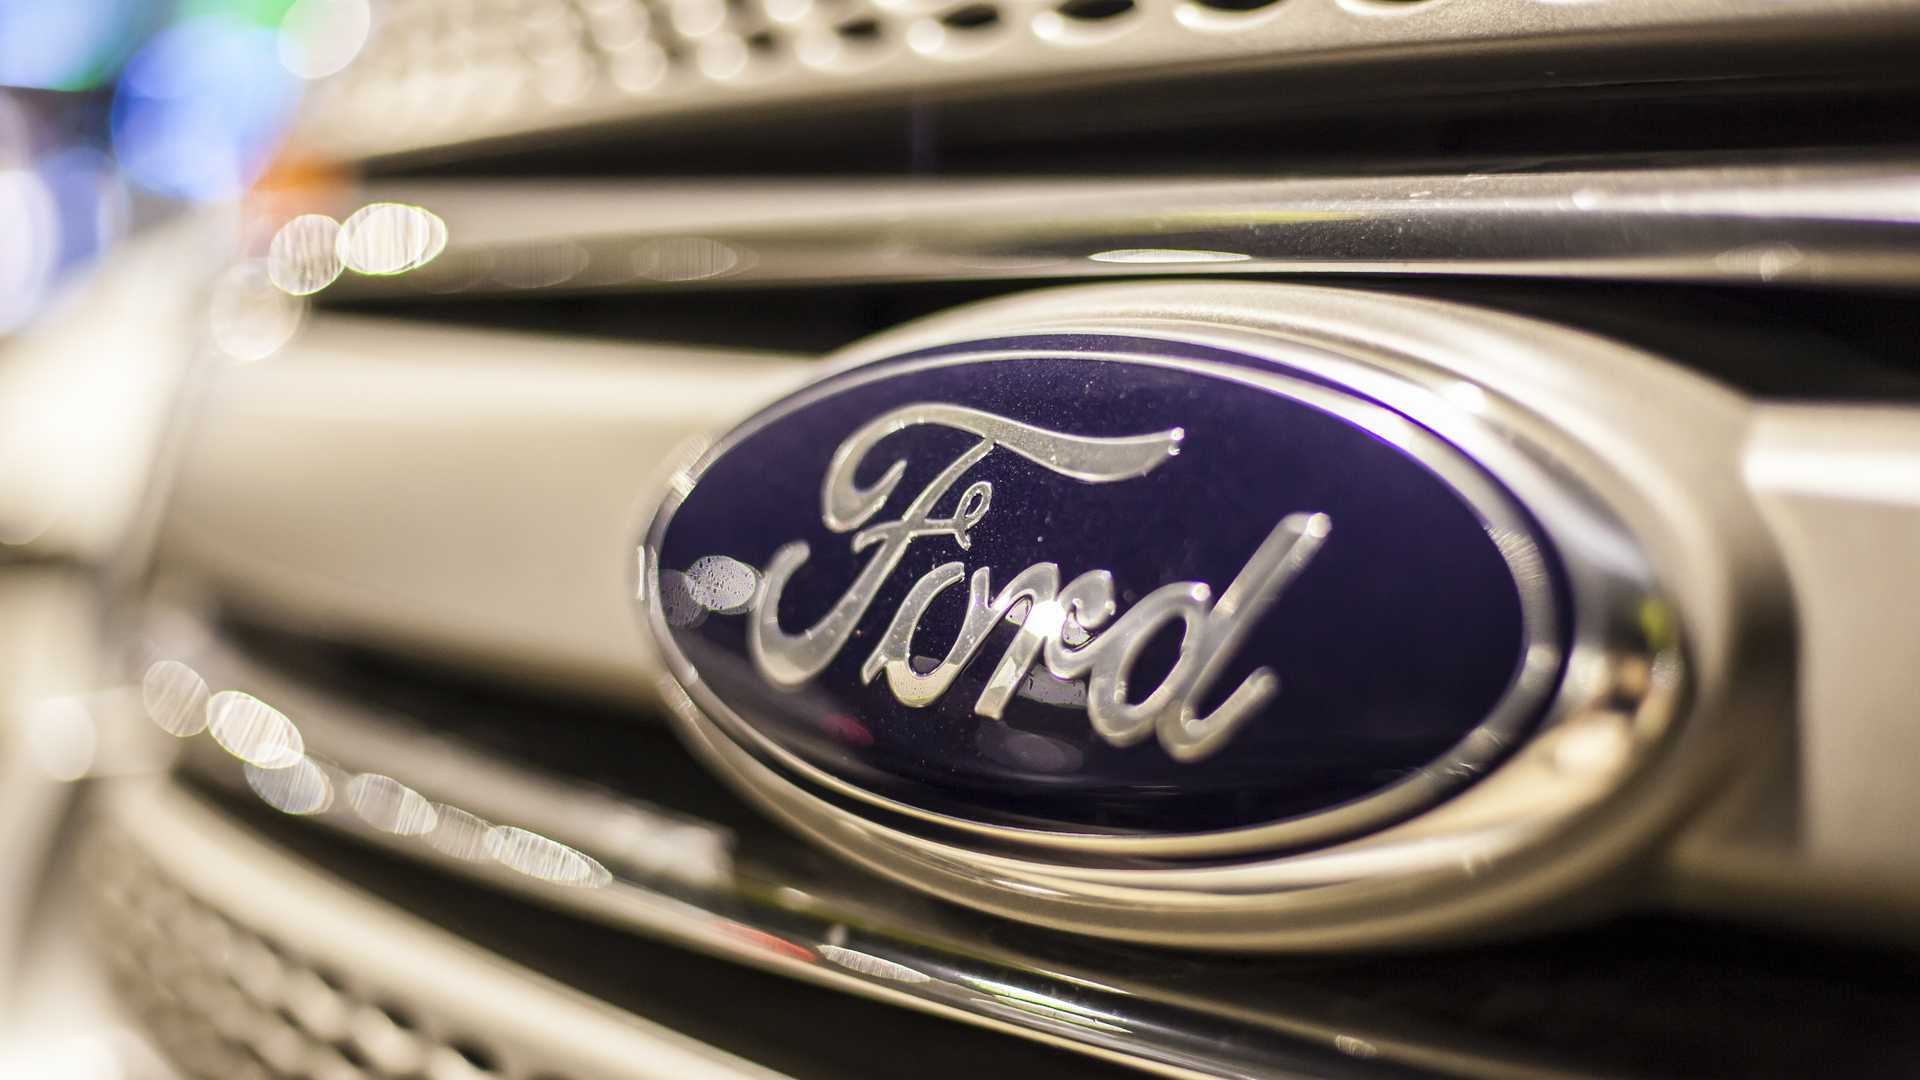 Is The Ford Extended Warranty Cost Worth The Price?